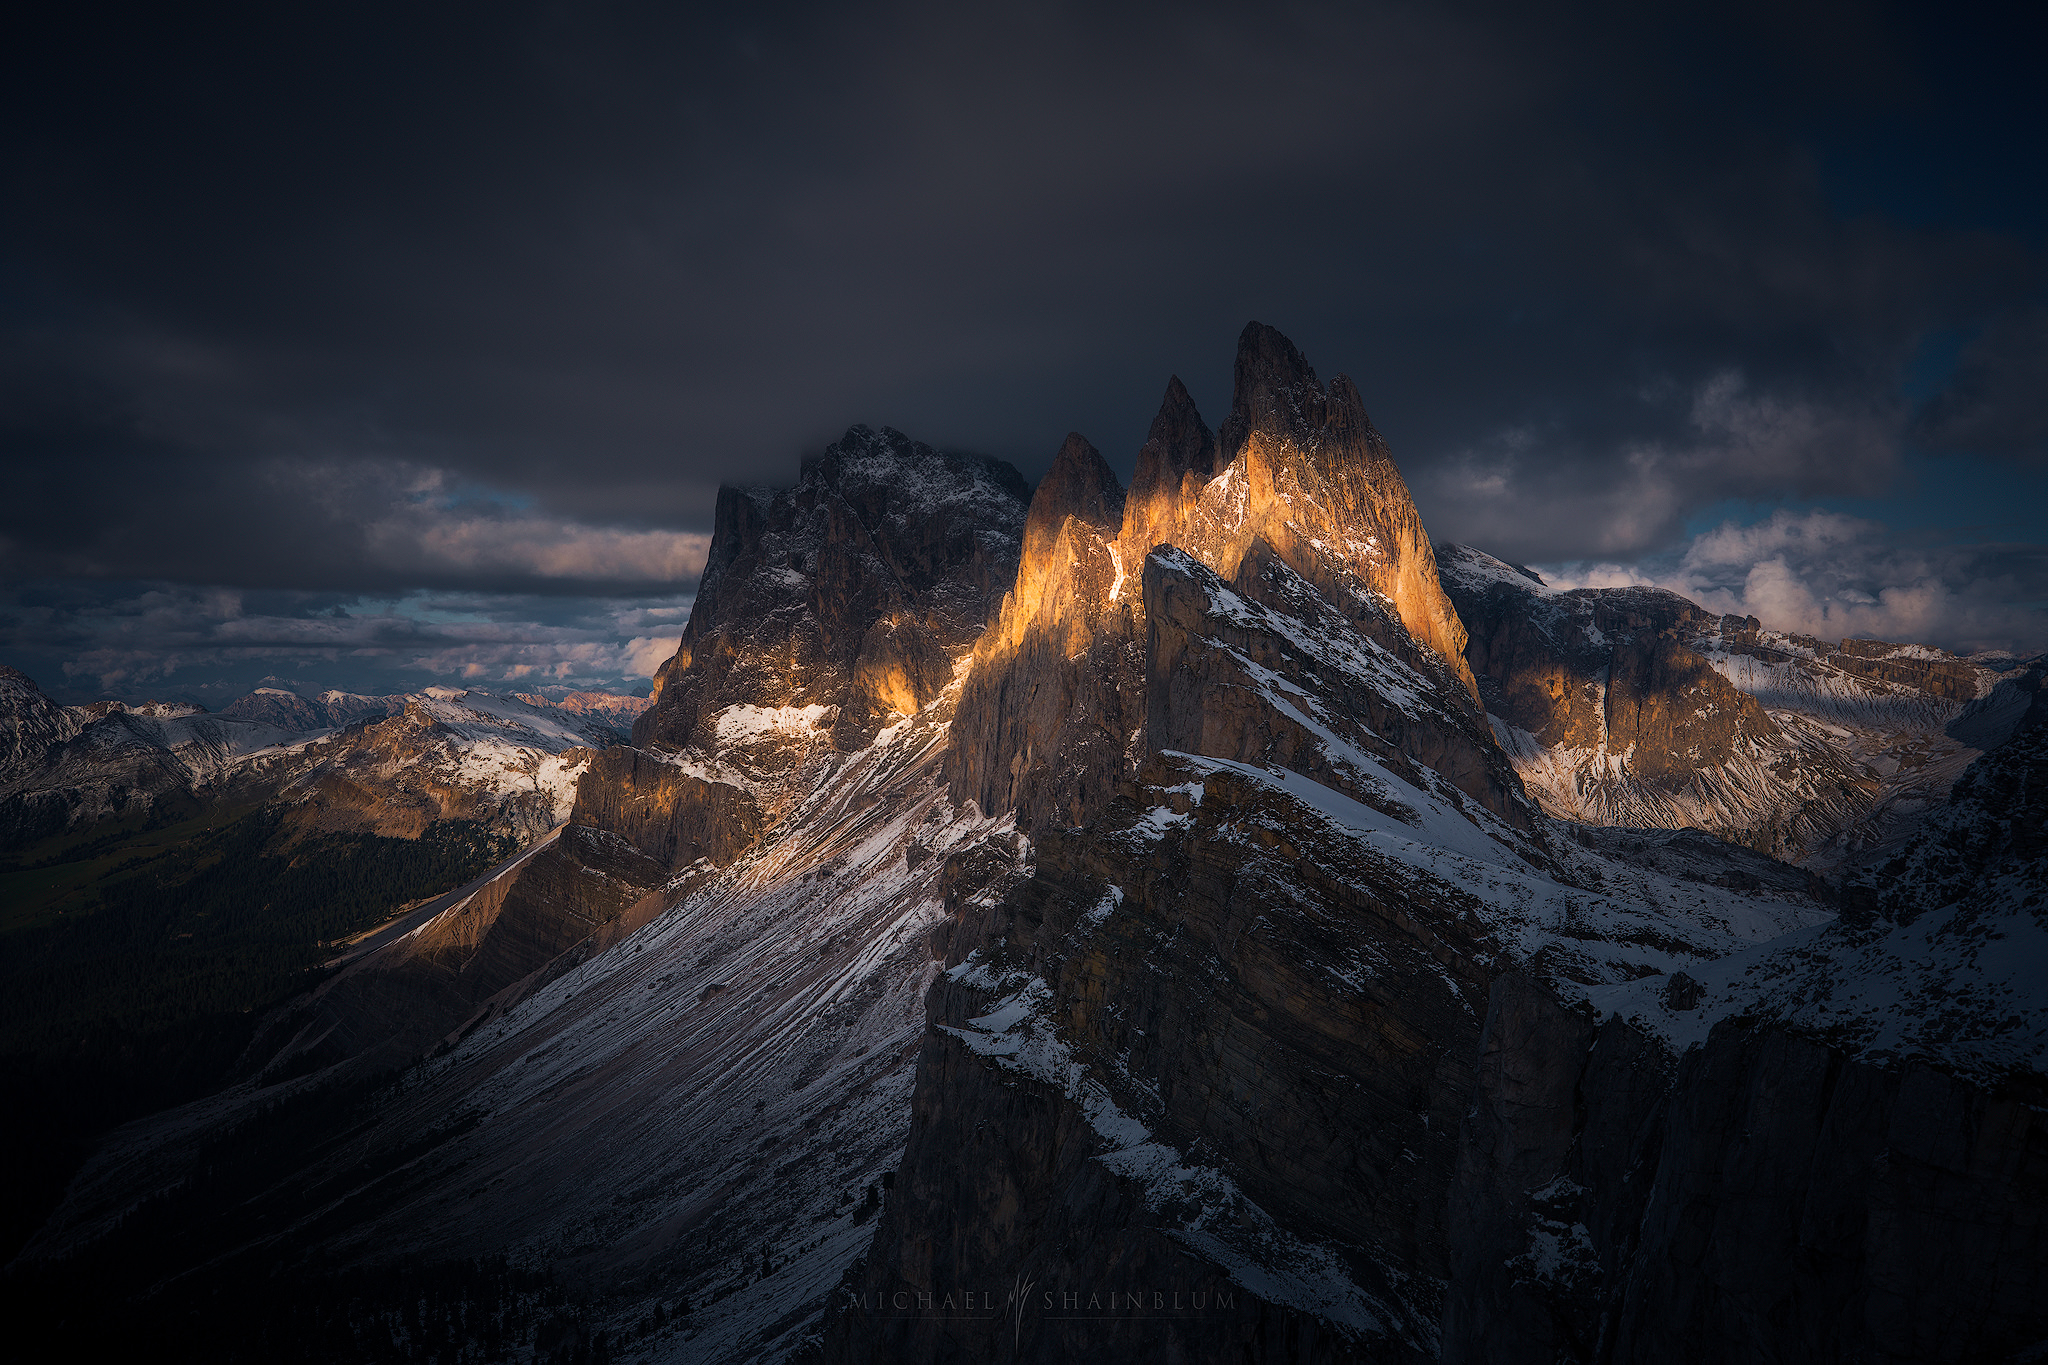 Sunset Dolomites timelapse photography